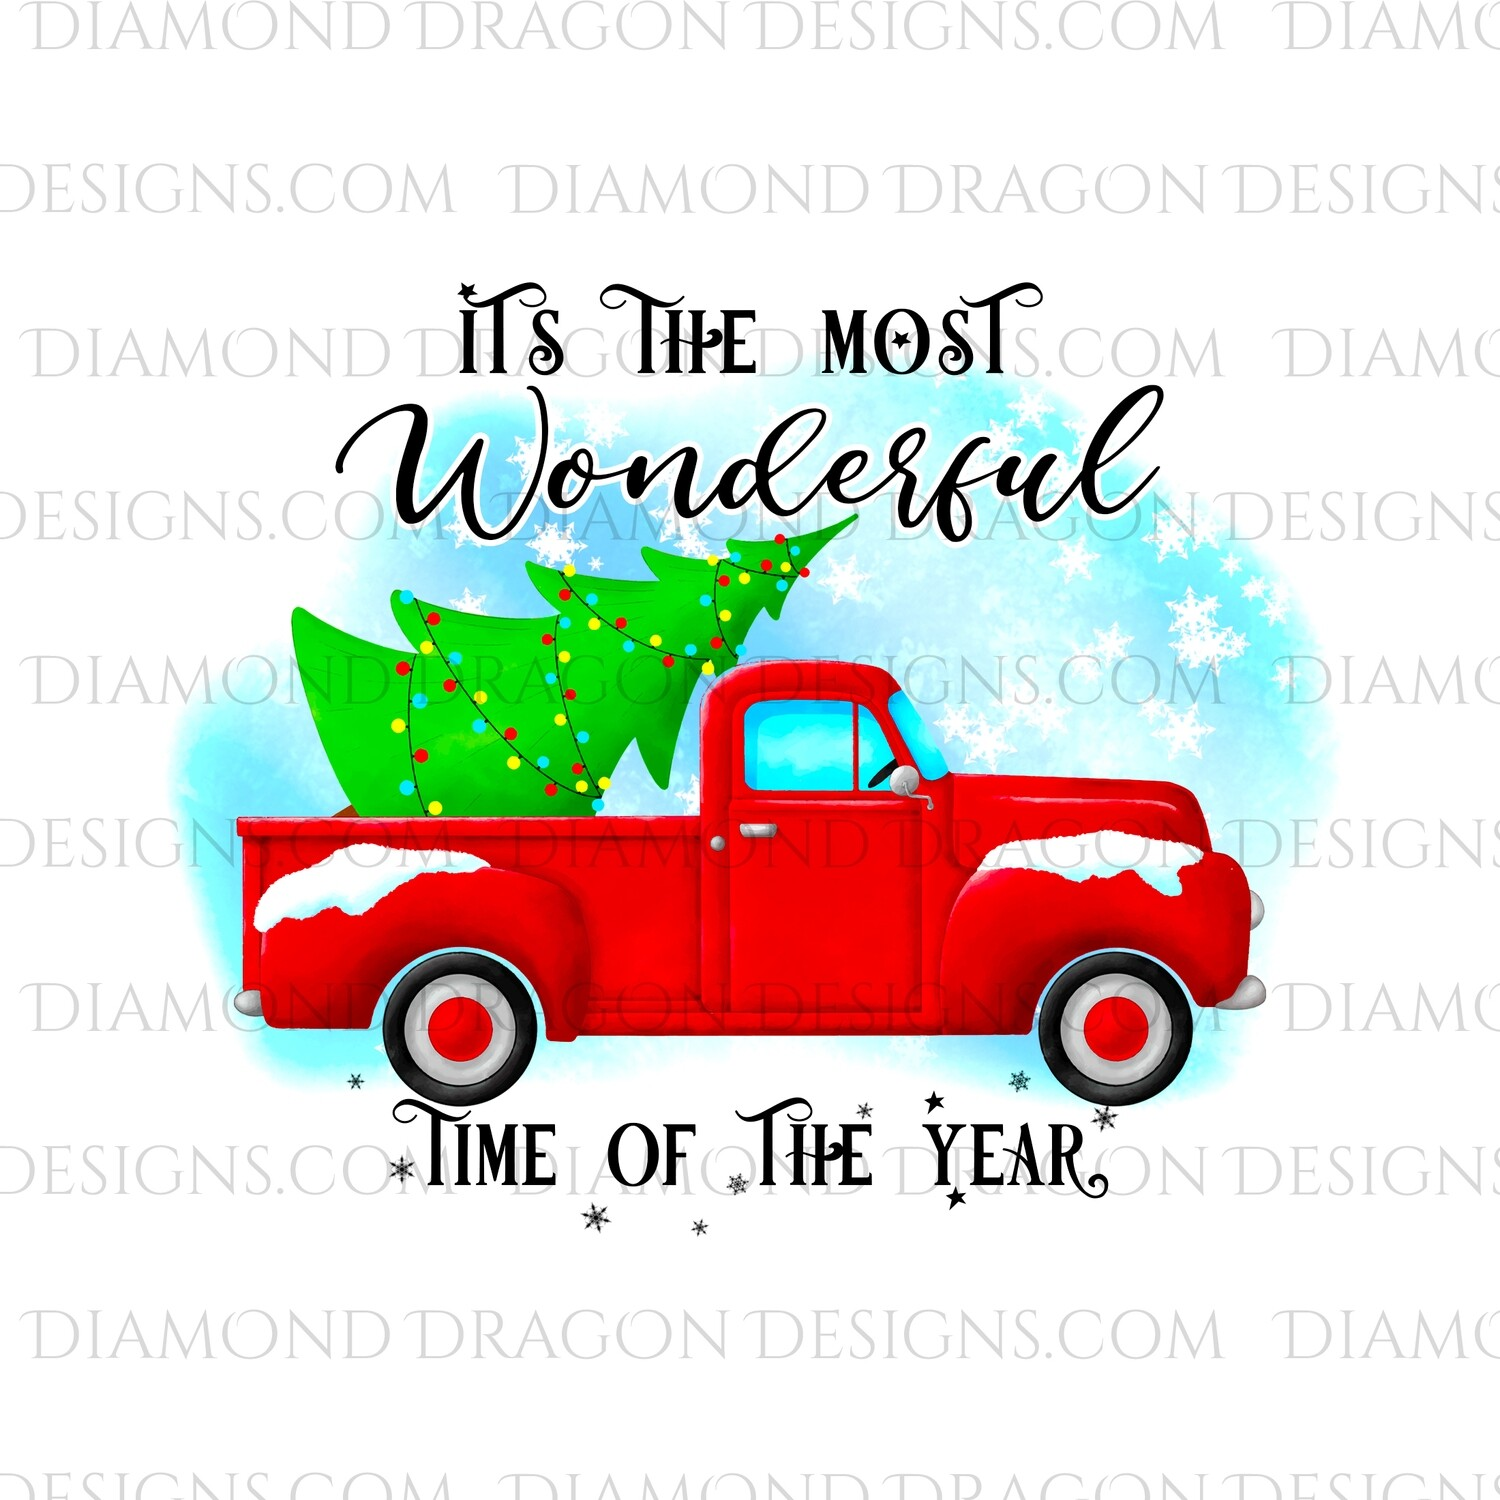 Christmas - Red Truck, Christmas Tree, It's the most wonderful time, Red Vintage Truck 7, Waterslide